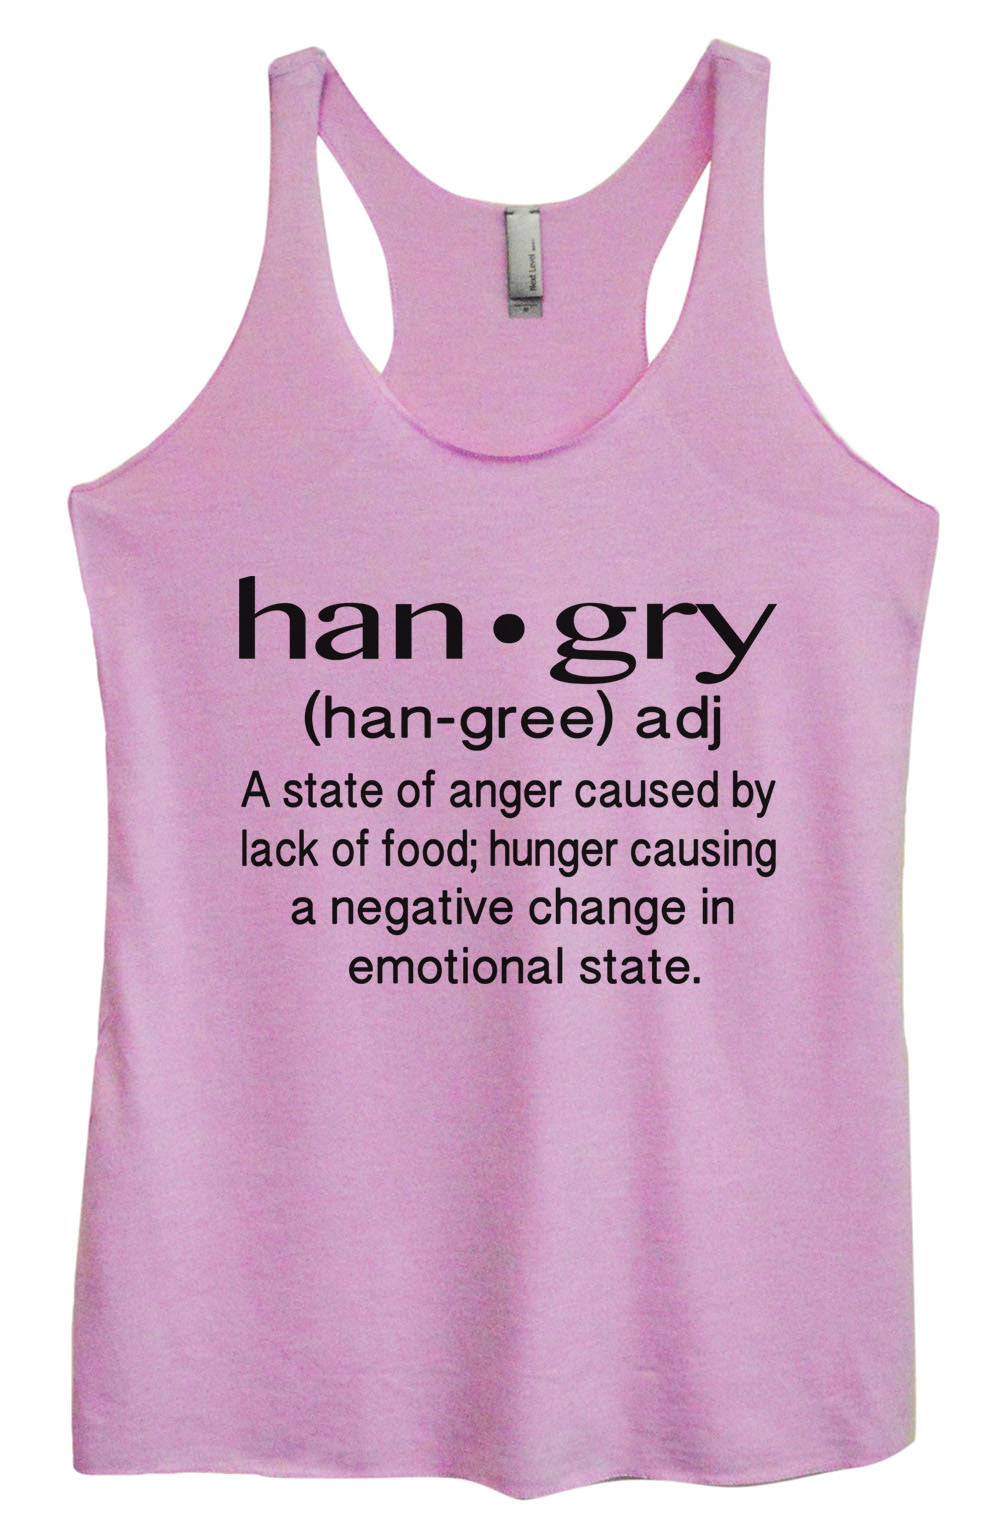 Womens Fashion Triblend Tank Top - Han.gry (Han-Gree) Adj A State Of Anger Caused By Lack Of Food; Hunger causing A Negative Change In Emotional State. - Tri-957 - Funny Shirts Tank Tops Burnouts and Triblends  - 4